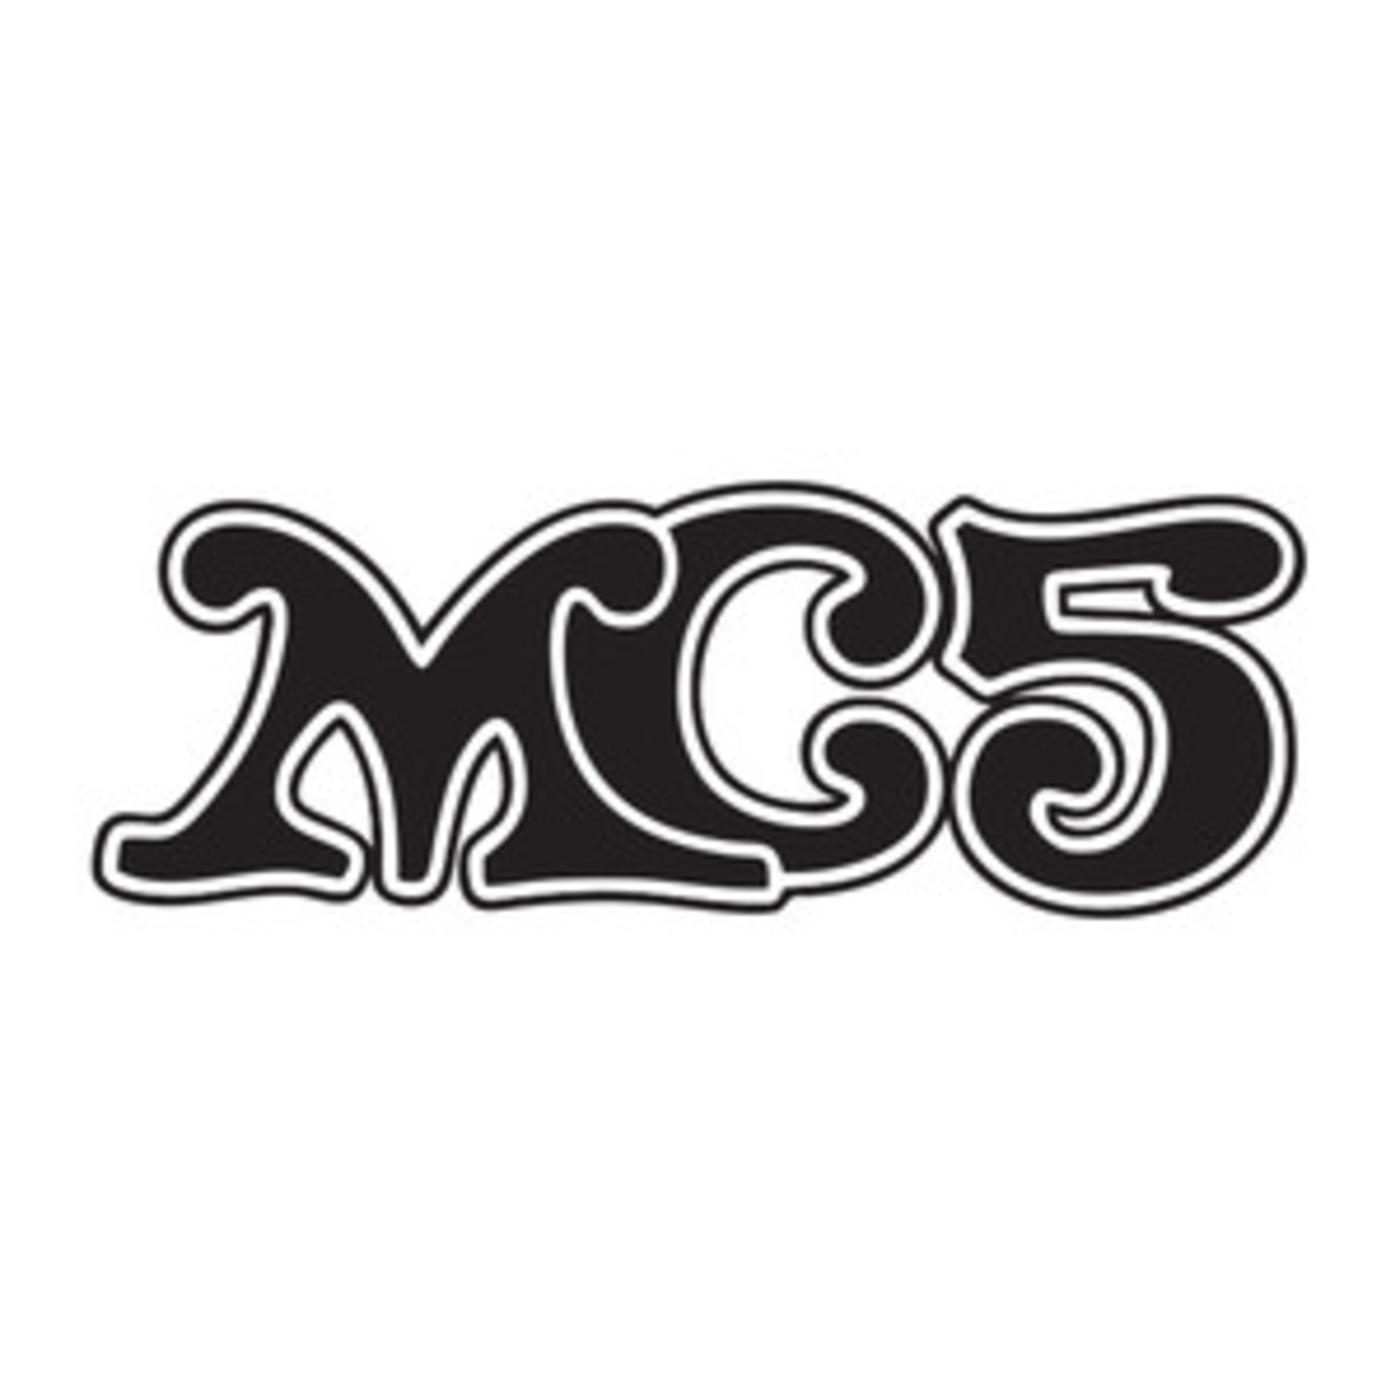 Official MC5 playlist - Kick Out The Jams, Looking At You, The American Ruse, Let Me Try, Tonight